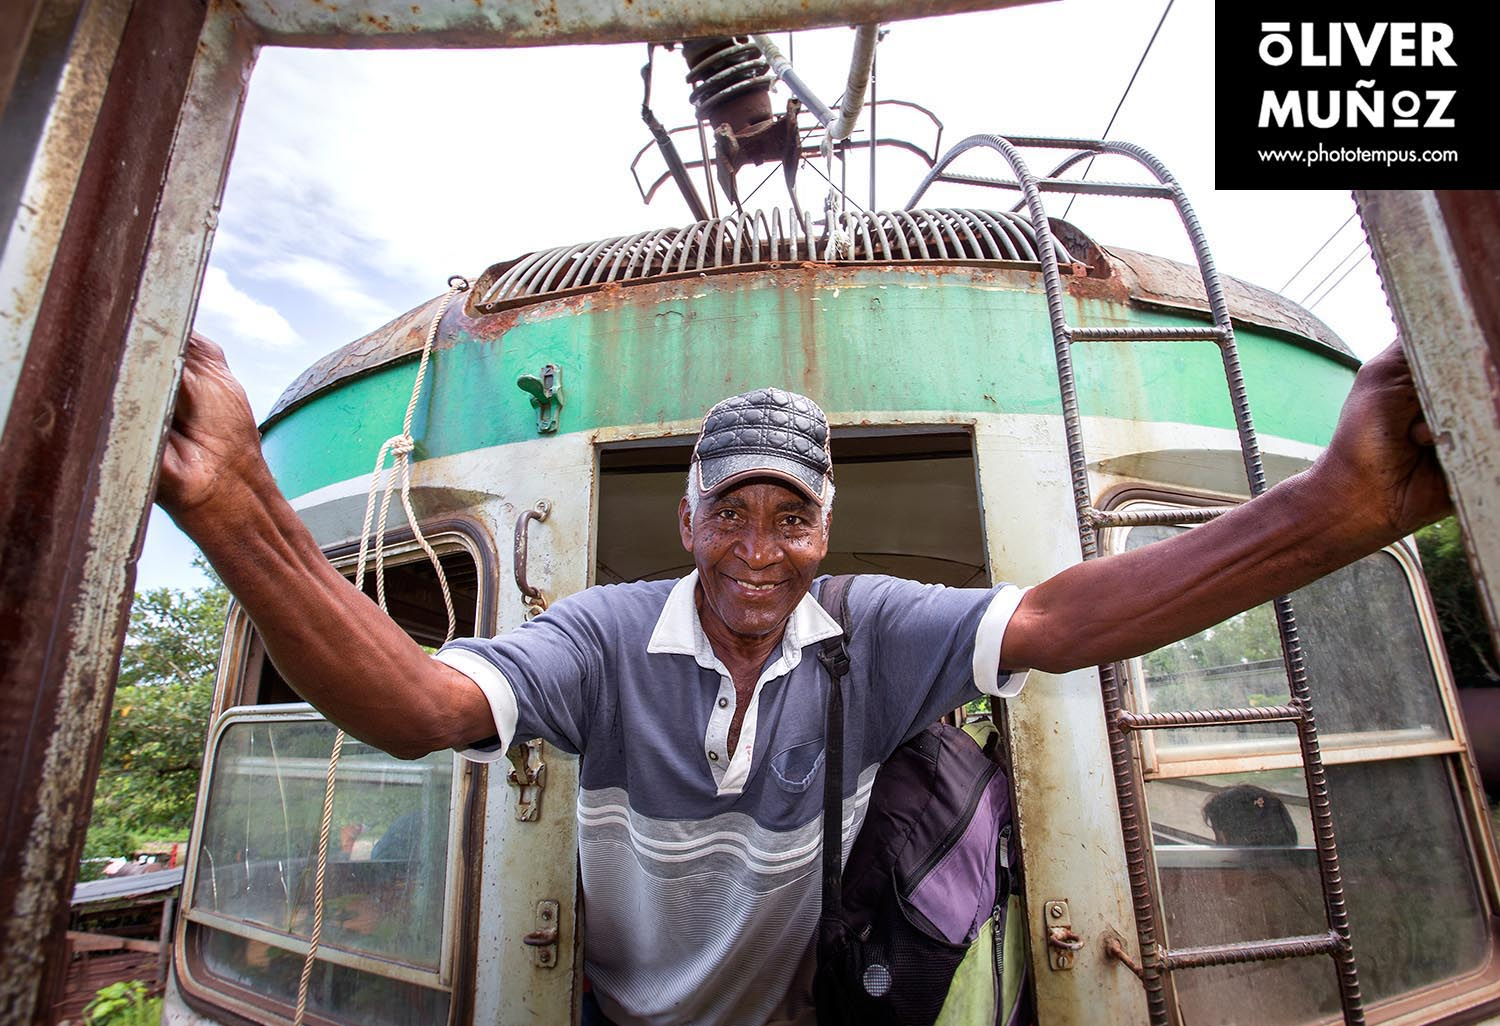 Train Hershey, journey to the past in Cuba